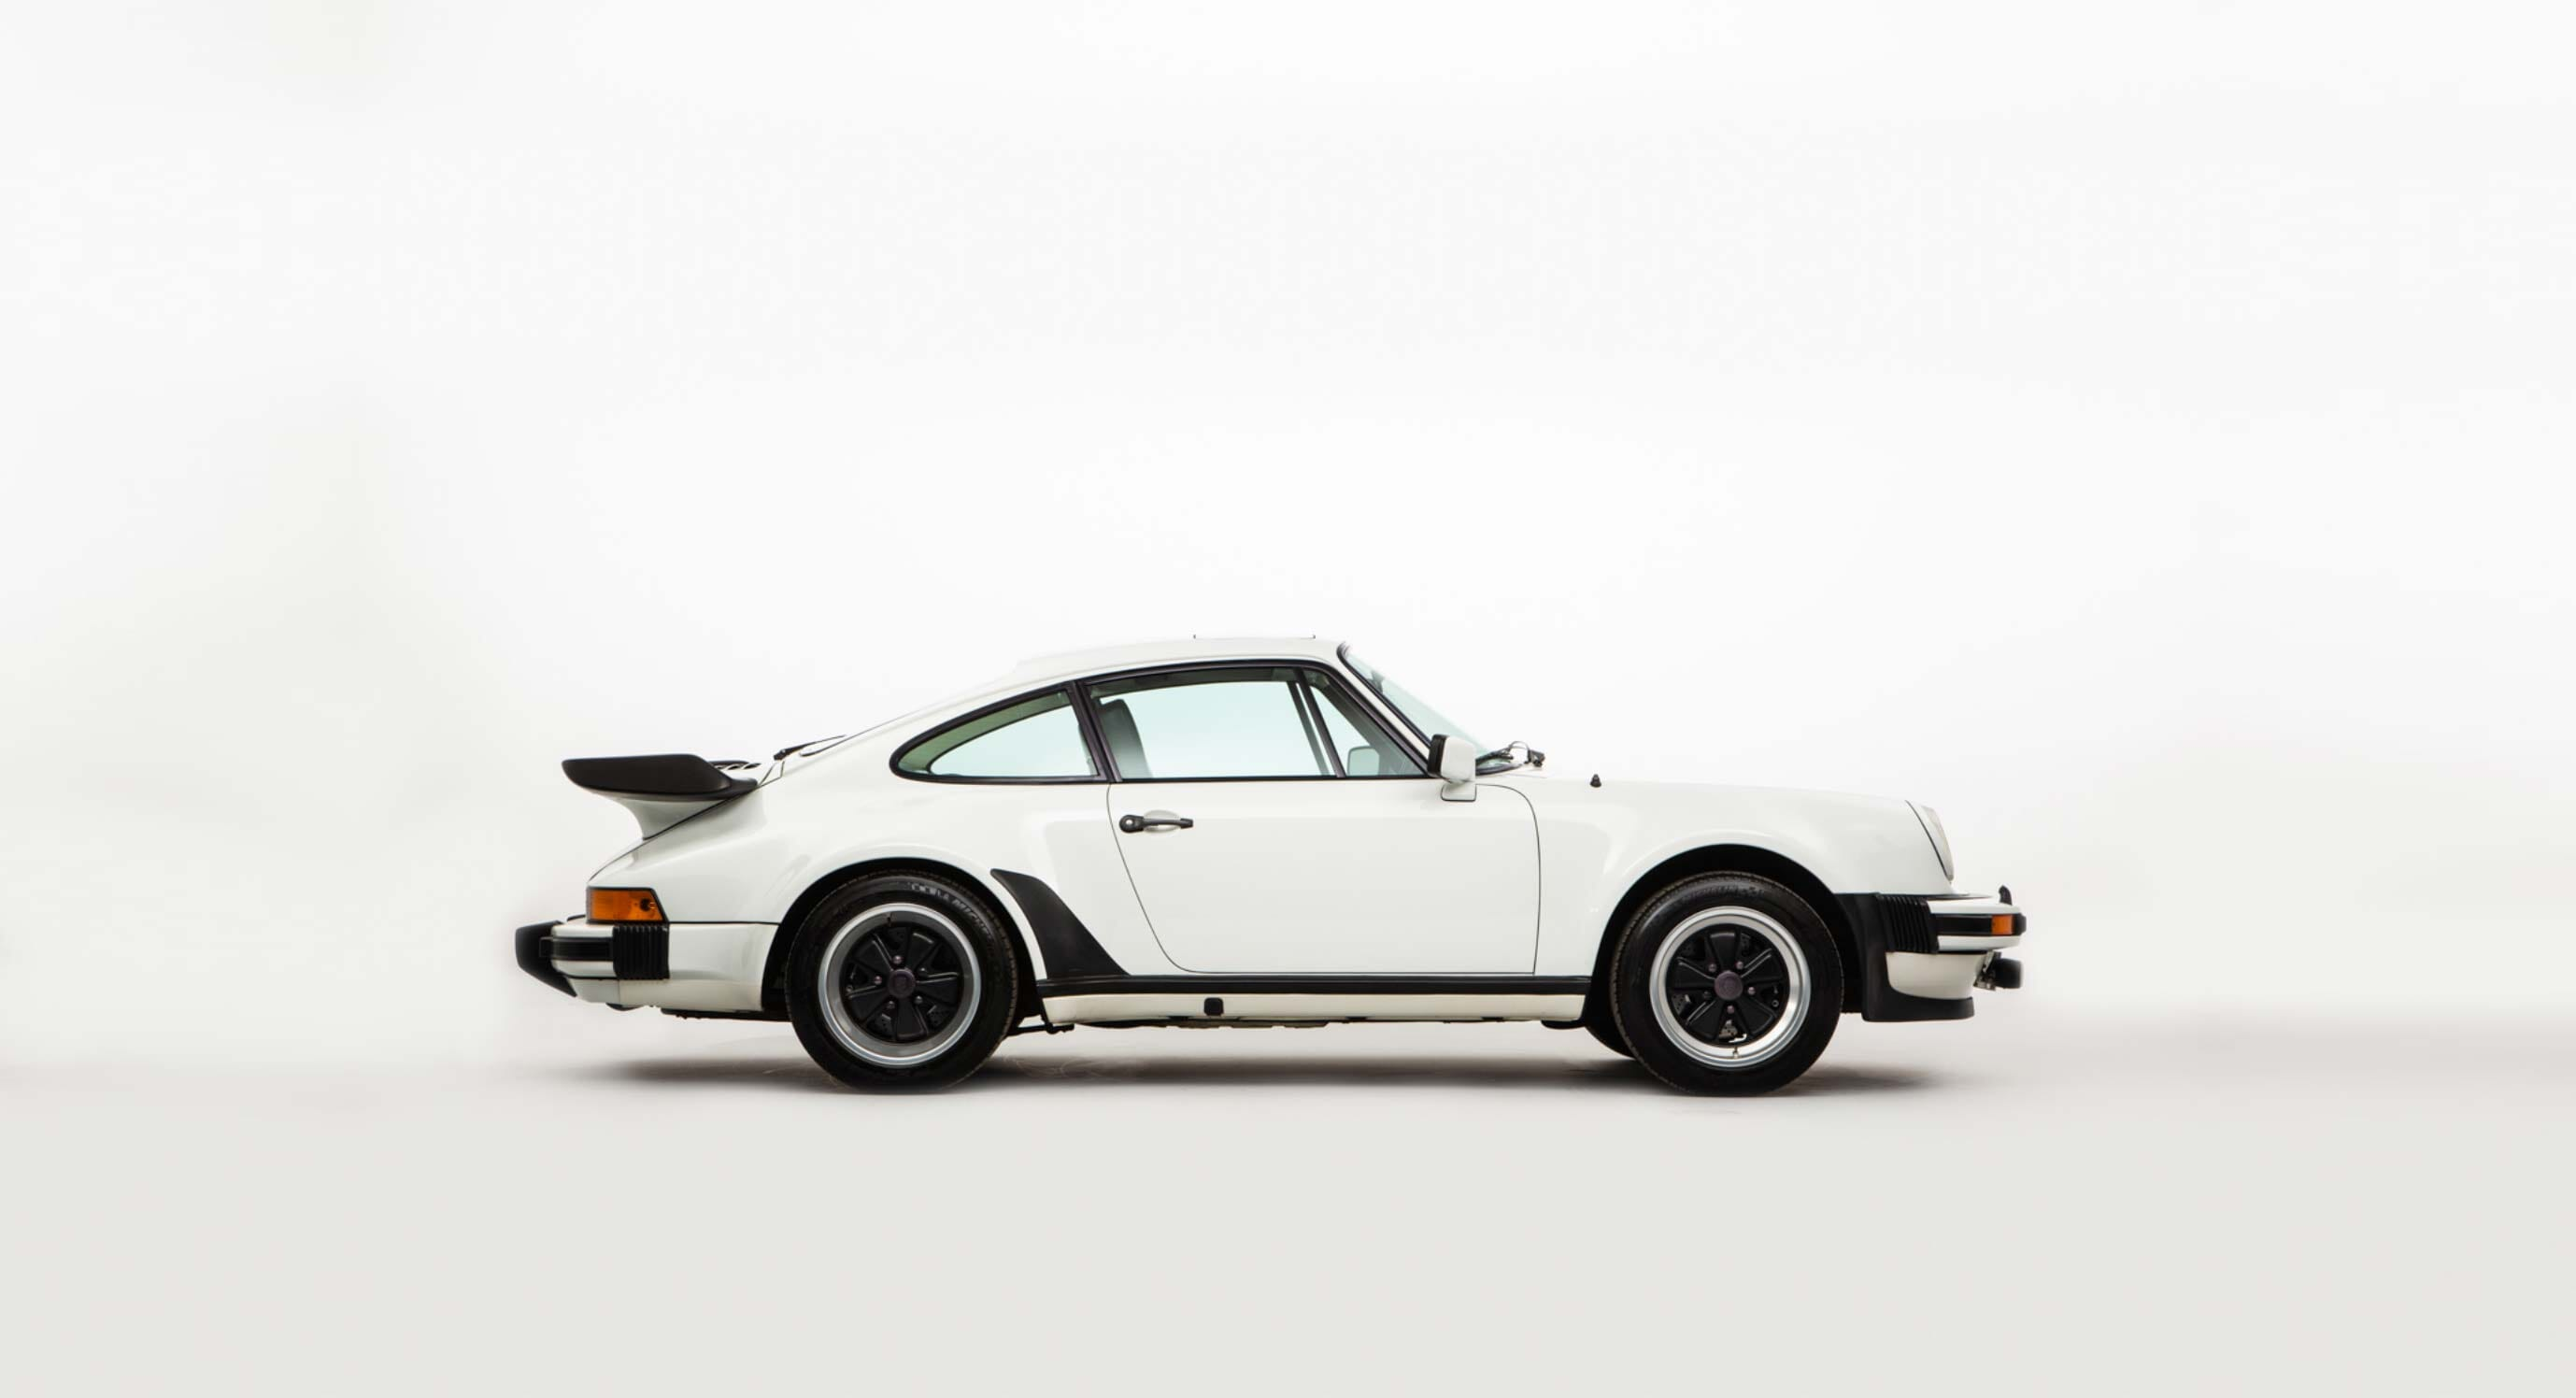 Classic Car Find of the Week: 1978 Porsche 911 930 Turbo